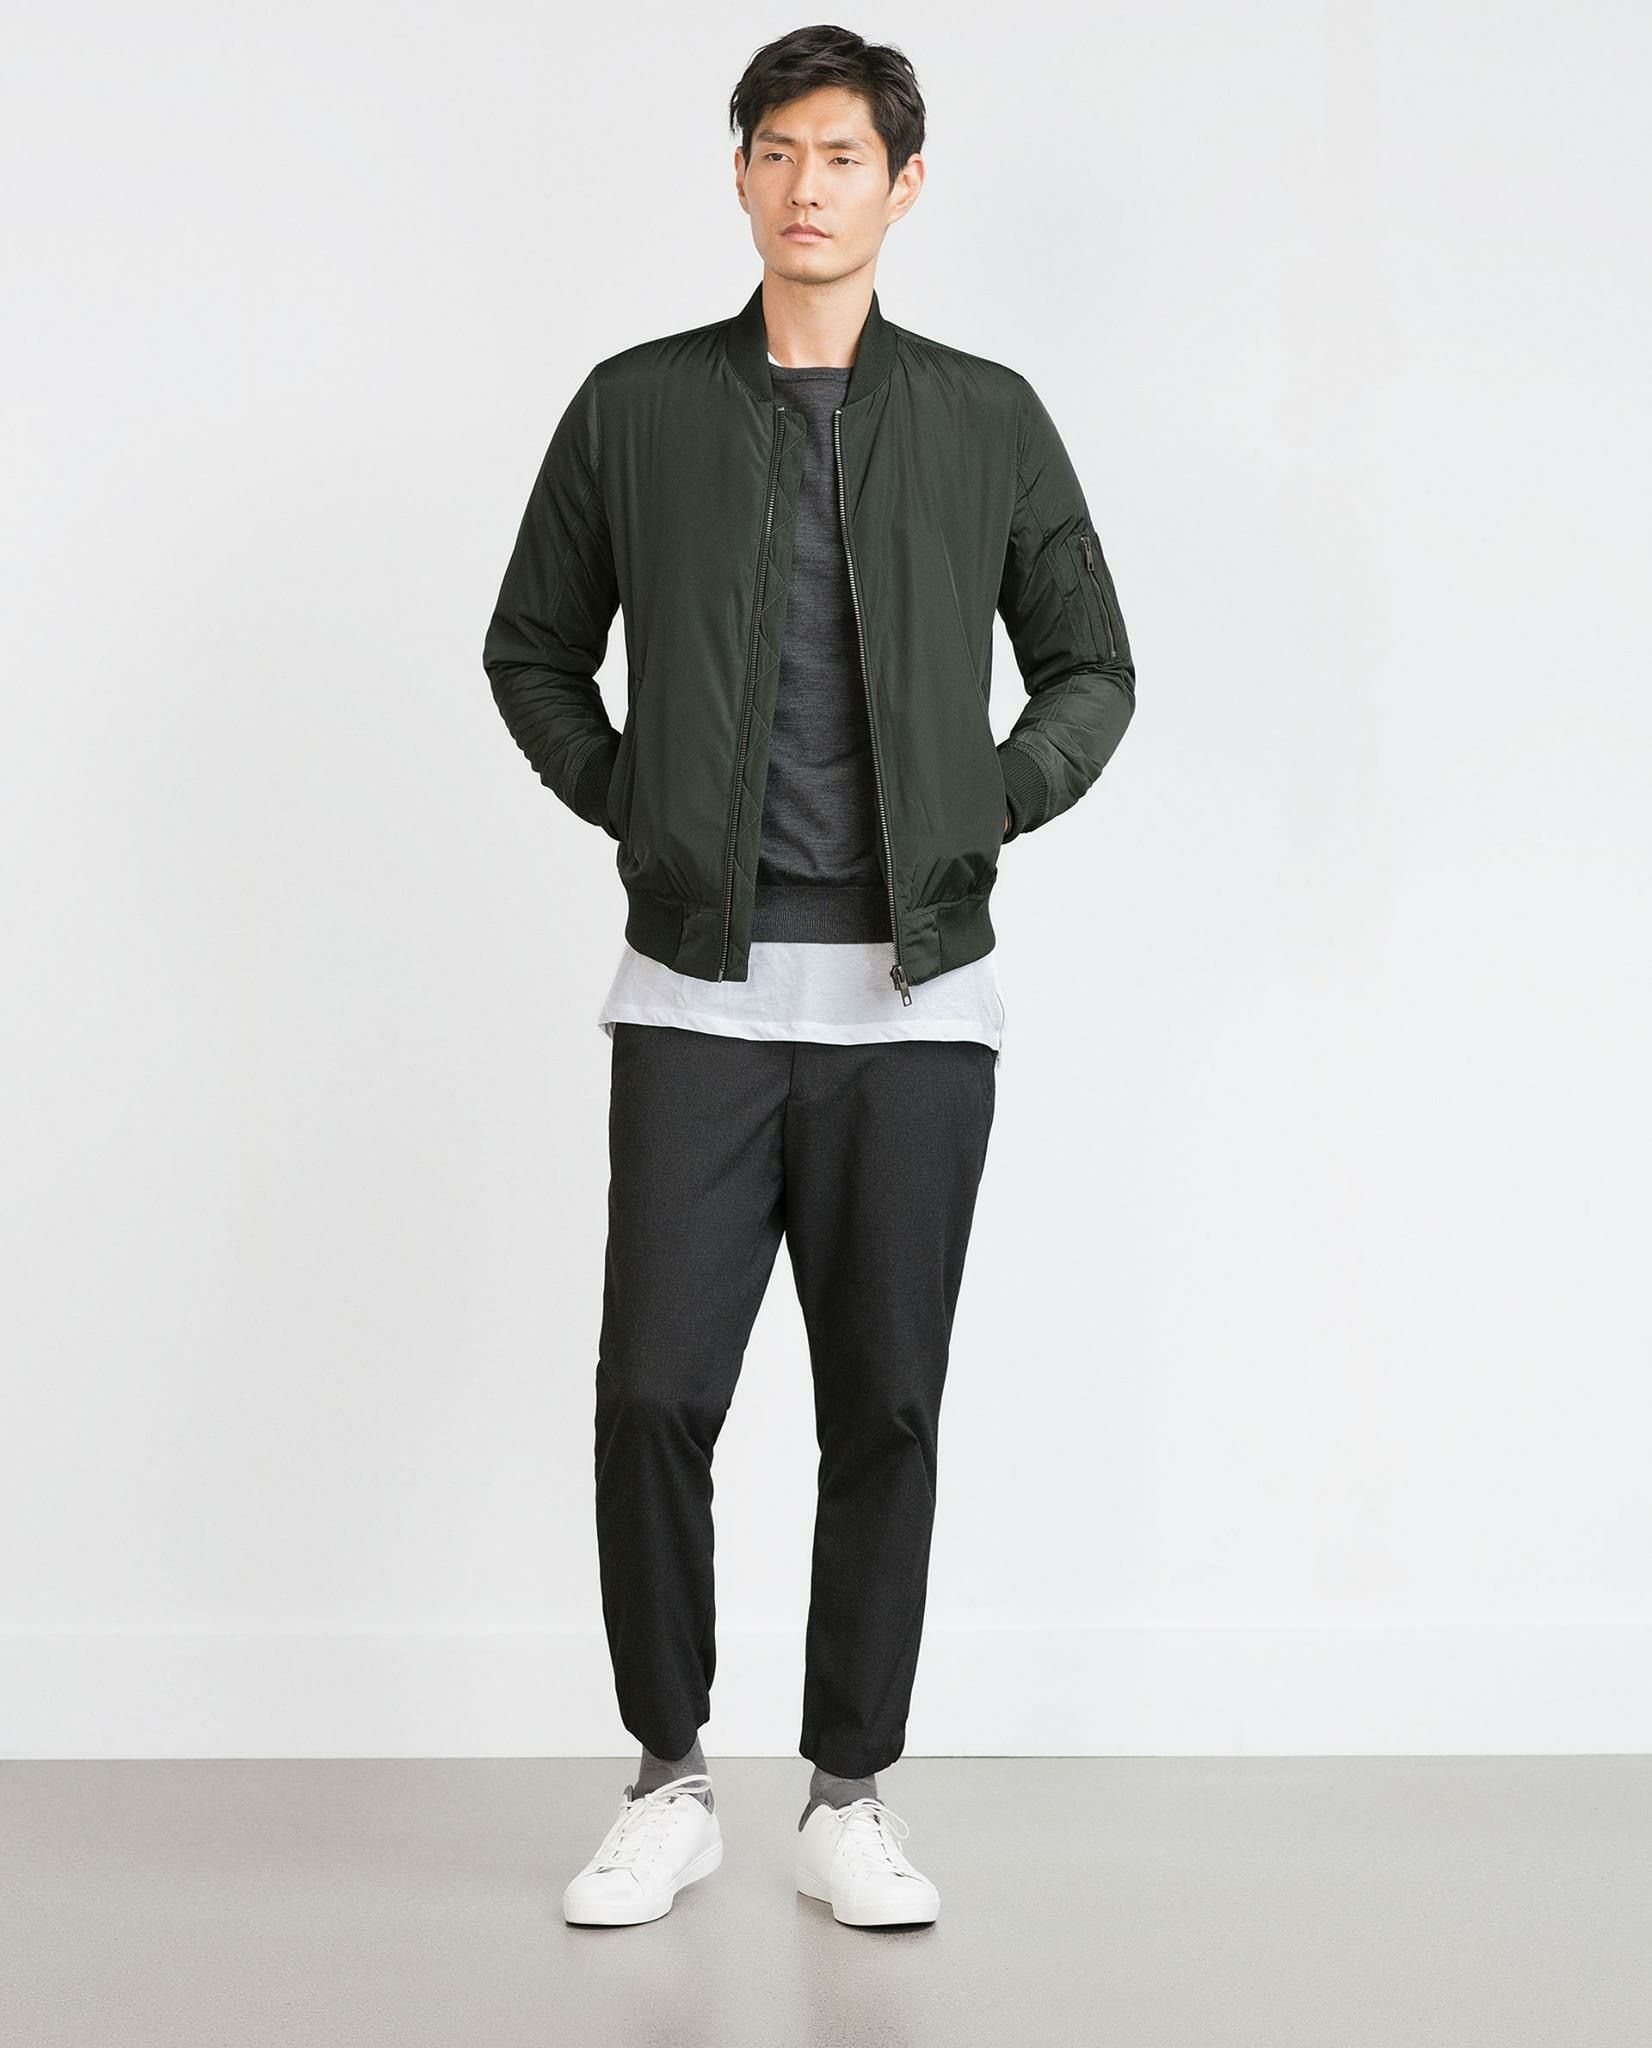 ZARA BOMBER JACKET WITH QUILTED LINING Size S M L